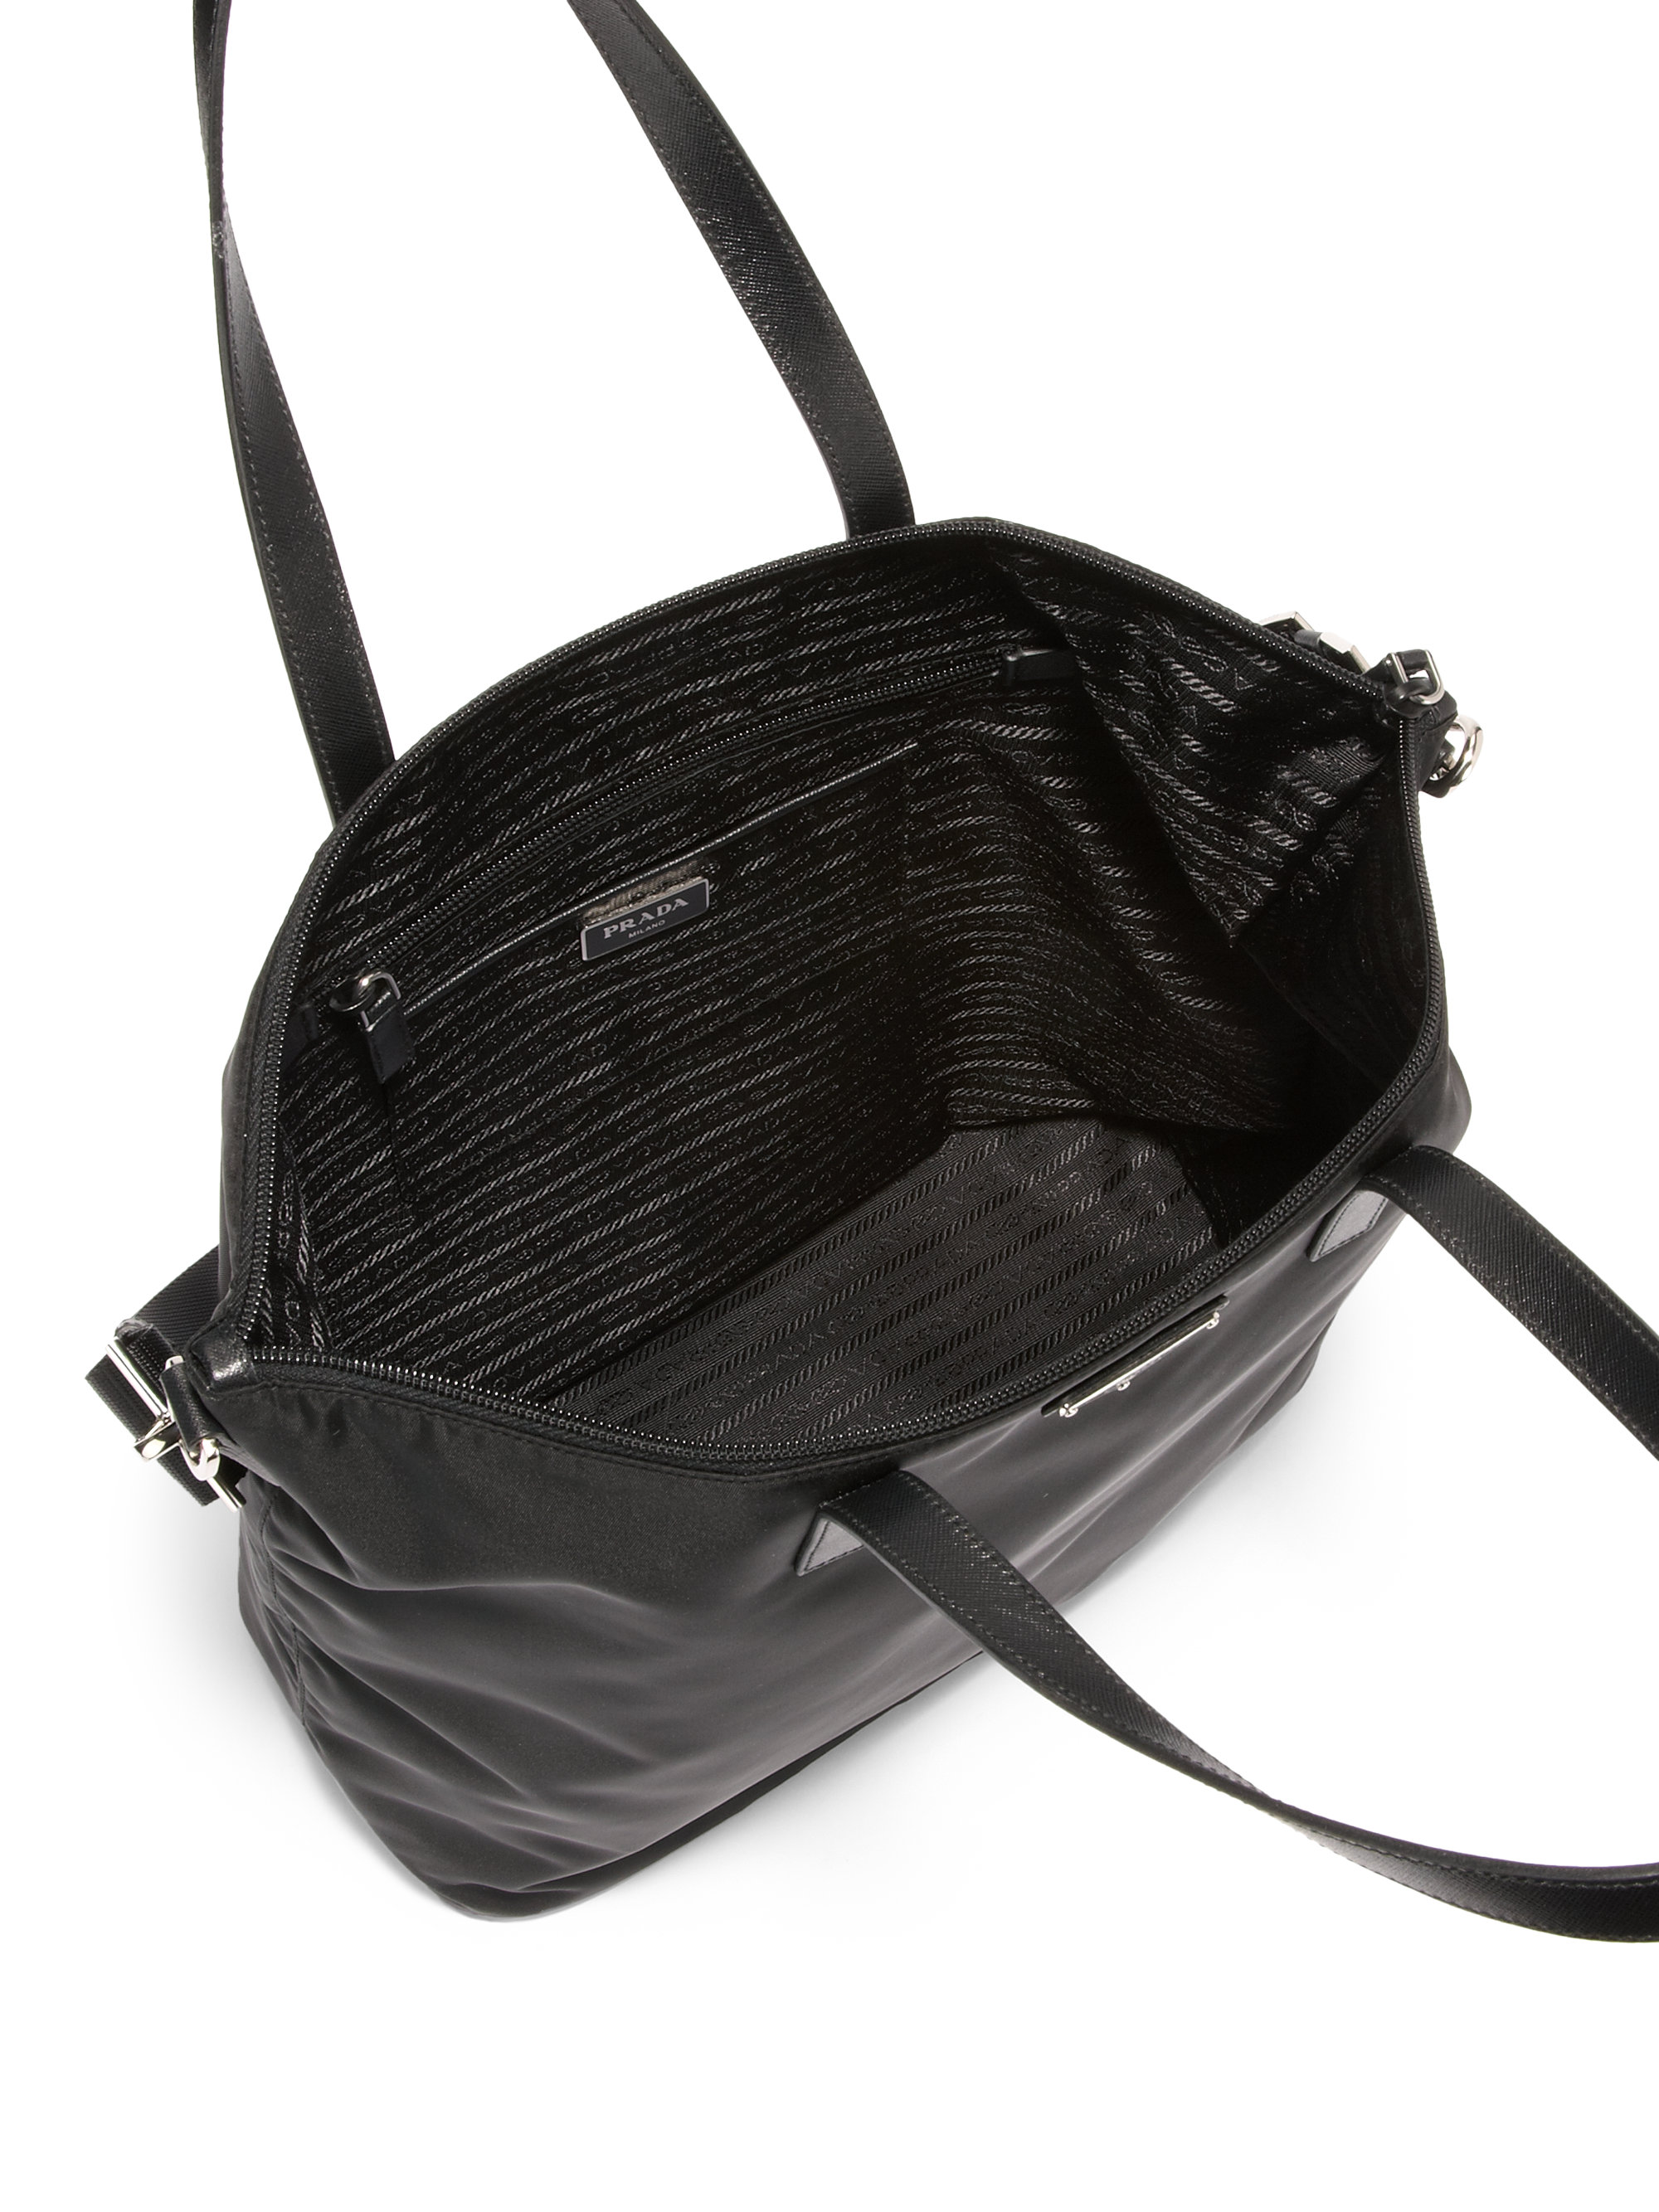 prada nylon large zip-top shoulder tote bag